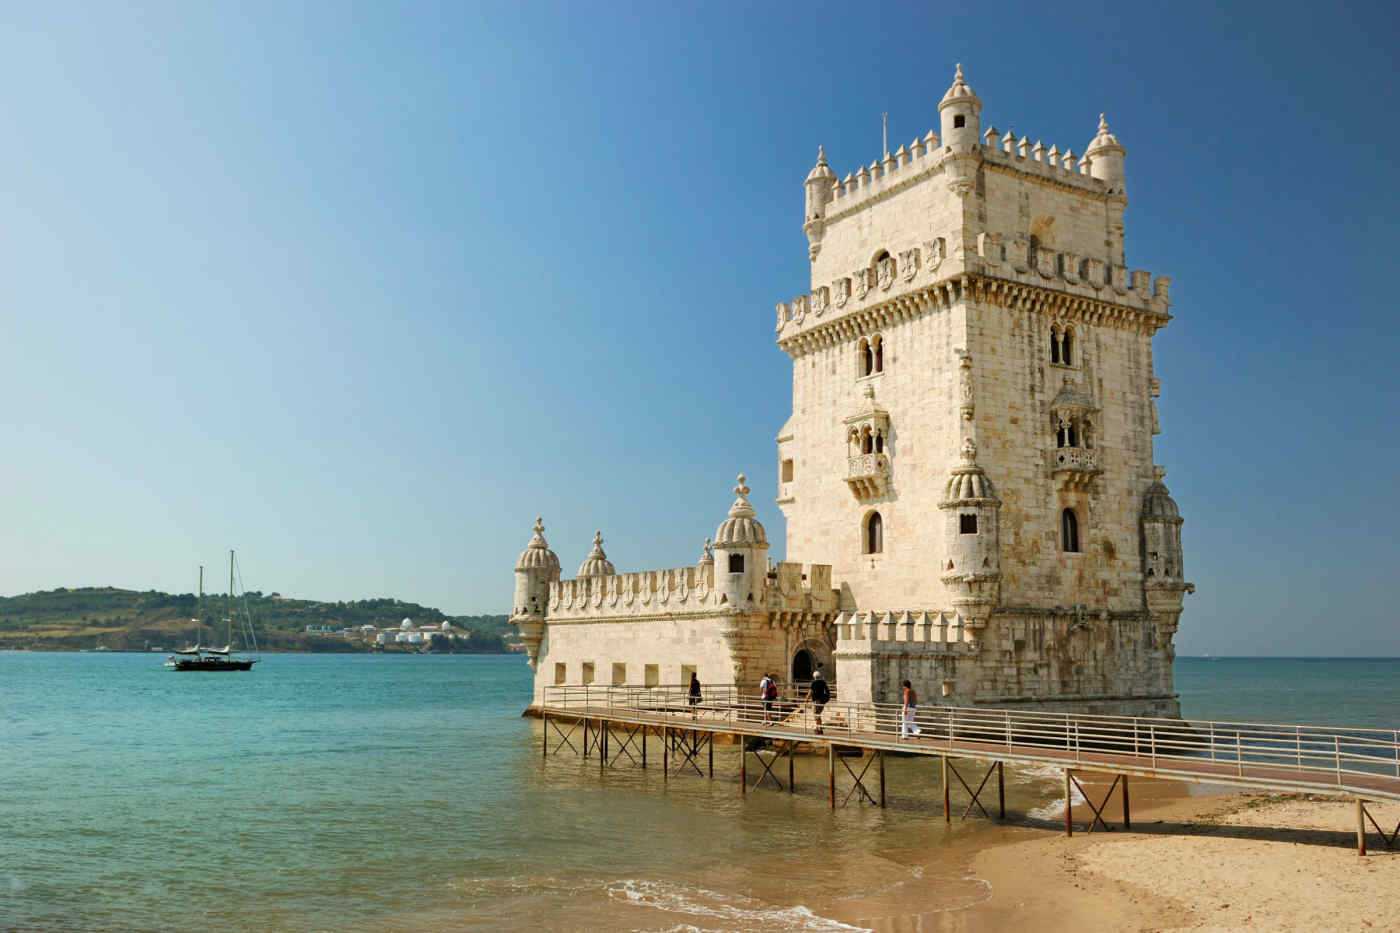 Belem Tower • Belem, Portugal